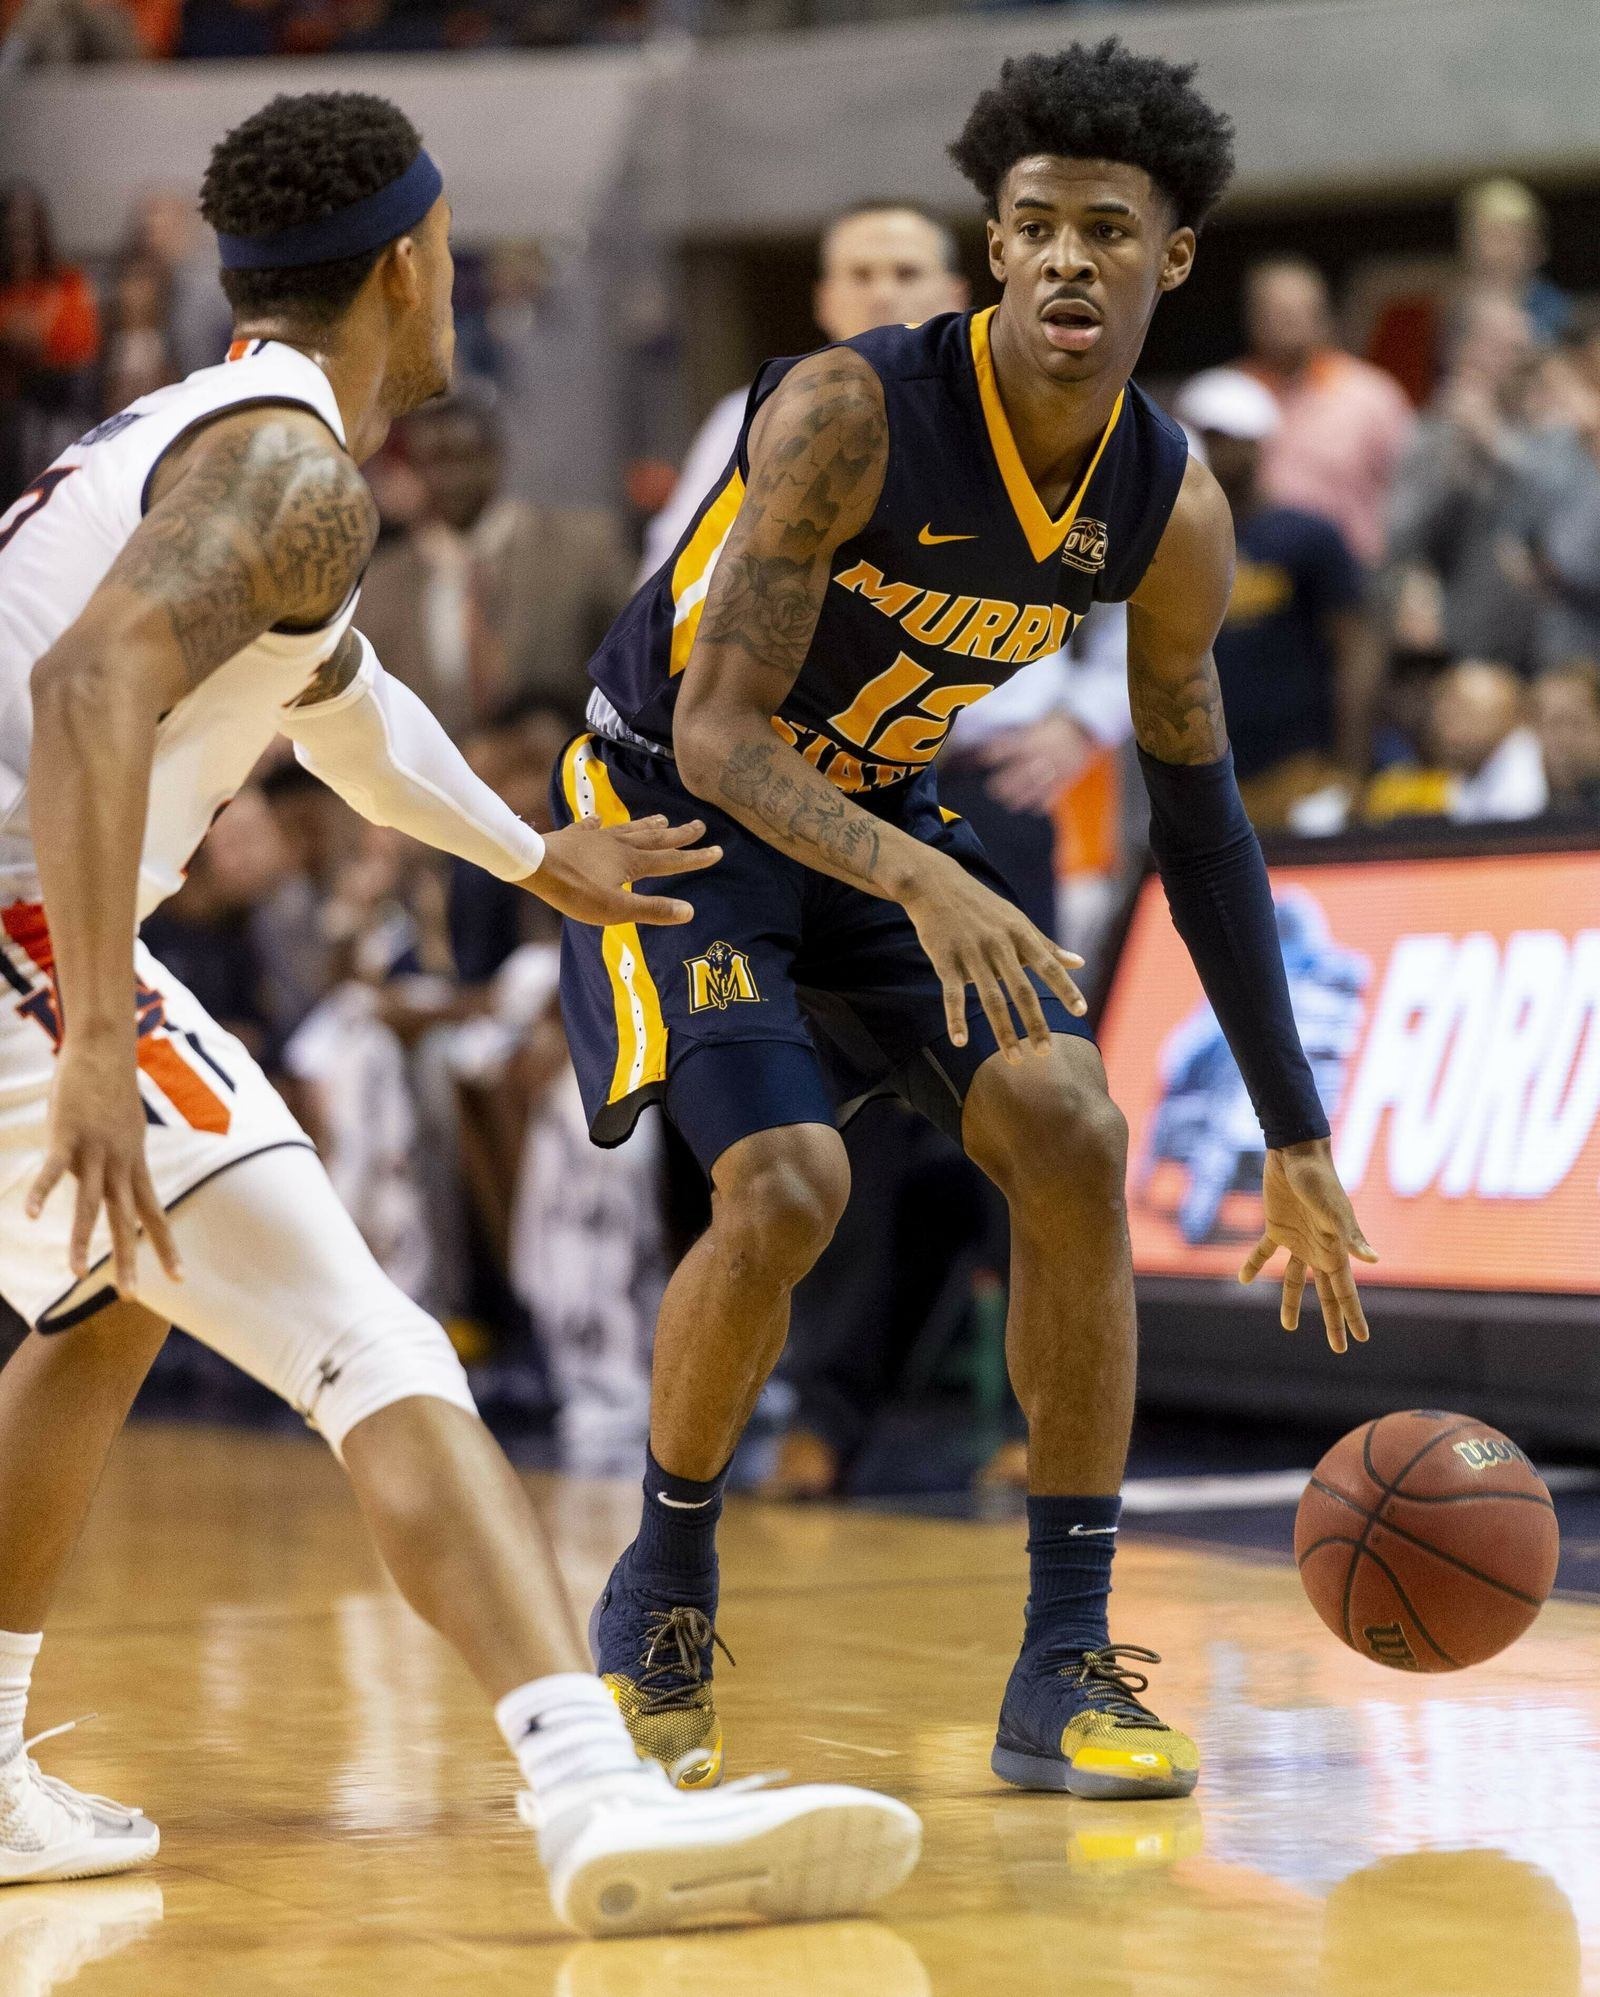 FILE - In this Dec. 22, 2018, file photo, Murray State guard Ja Morant (12) works around Auburn guard Bryce Brown (2) during the first half of an NCAA college basketball game, in Auburn, Ala. Morant, Darius Garland and Coby White make up a clear top tier of point guards in next week's NBA draft.  (AP Photo/Vasha Hunt, File)